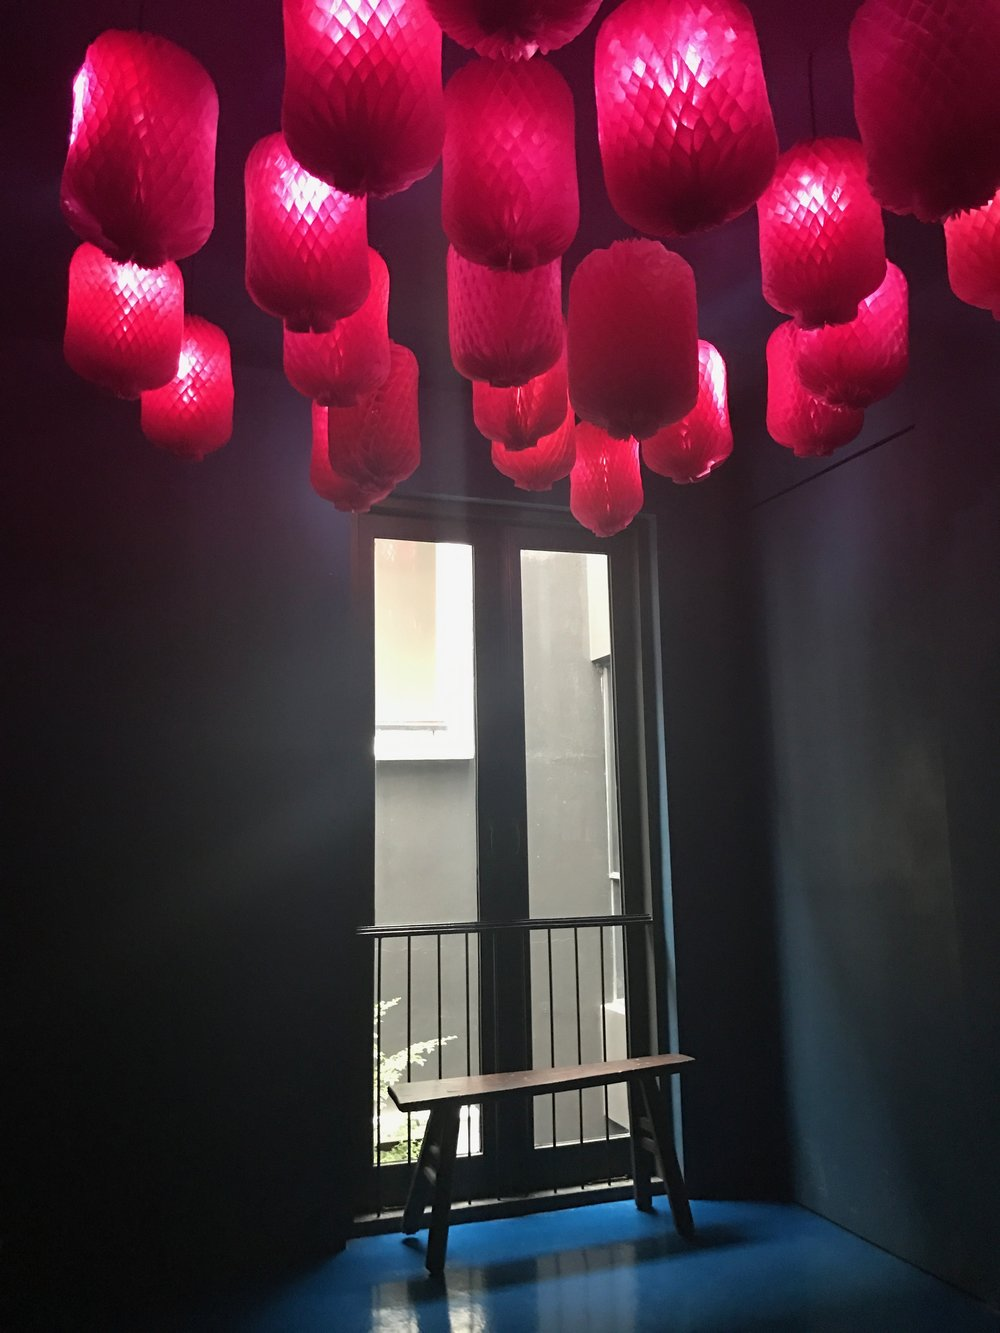 Above you, pink paper lanterns offer a bit of modern whimsy